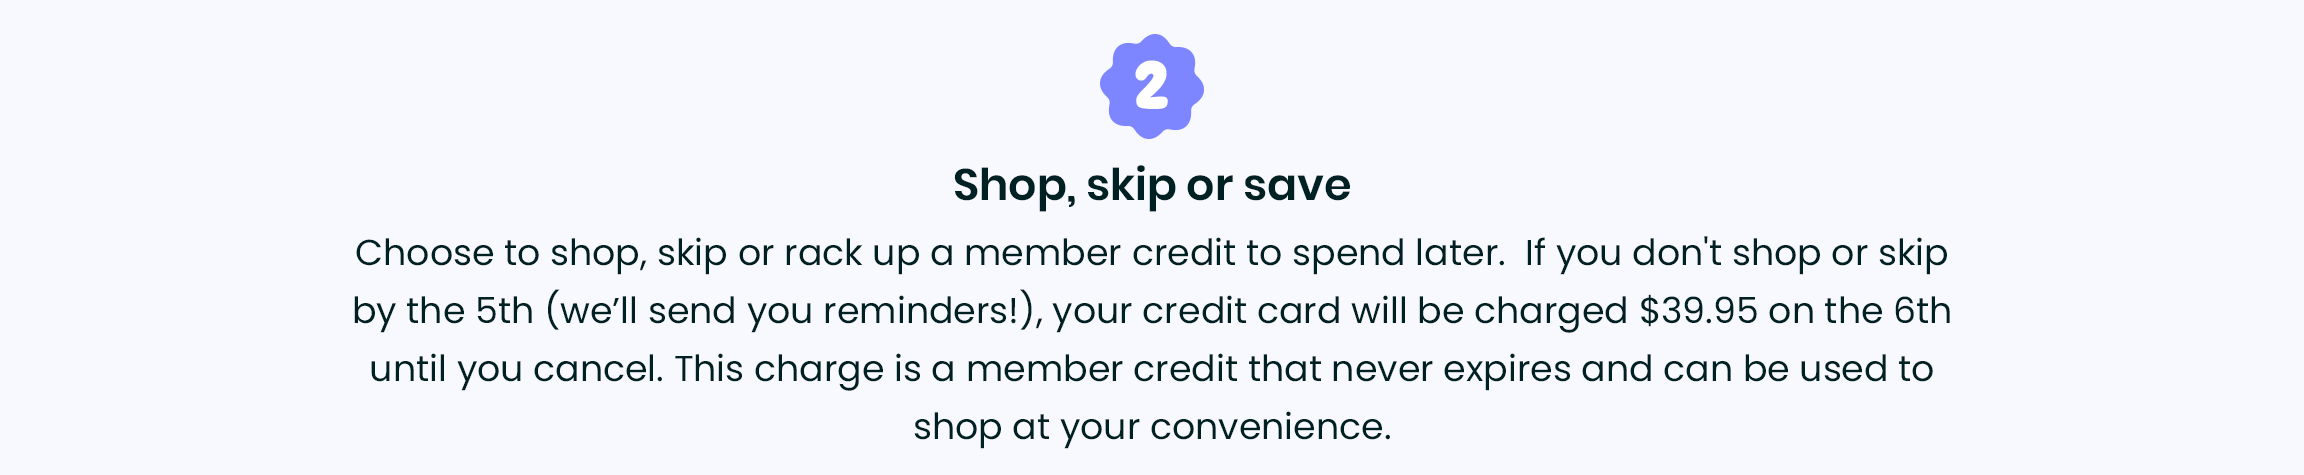 2. Shop, skip or save - Choose to shop, skip or rack up a member credit to spend later.  If you don't shop or skip by the 5th (we'll send you reminders!), your credit card will be charged $39.95 on the 6th until you cancel. This charge is a member credit that never expires and can be used to shop at your convenience.